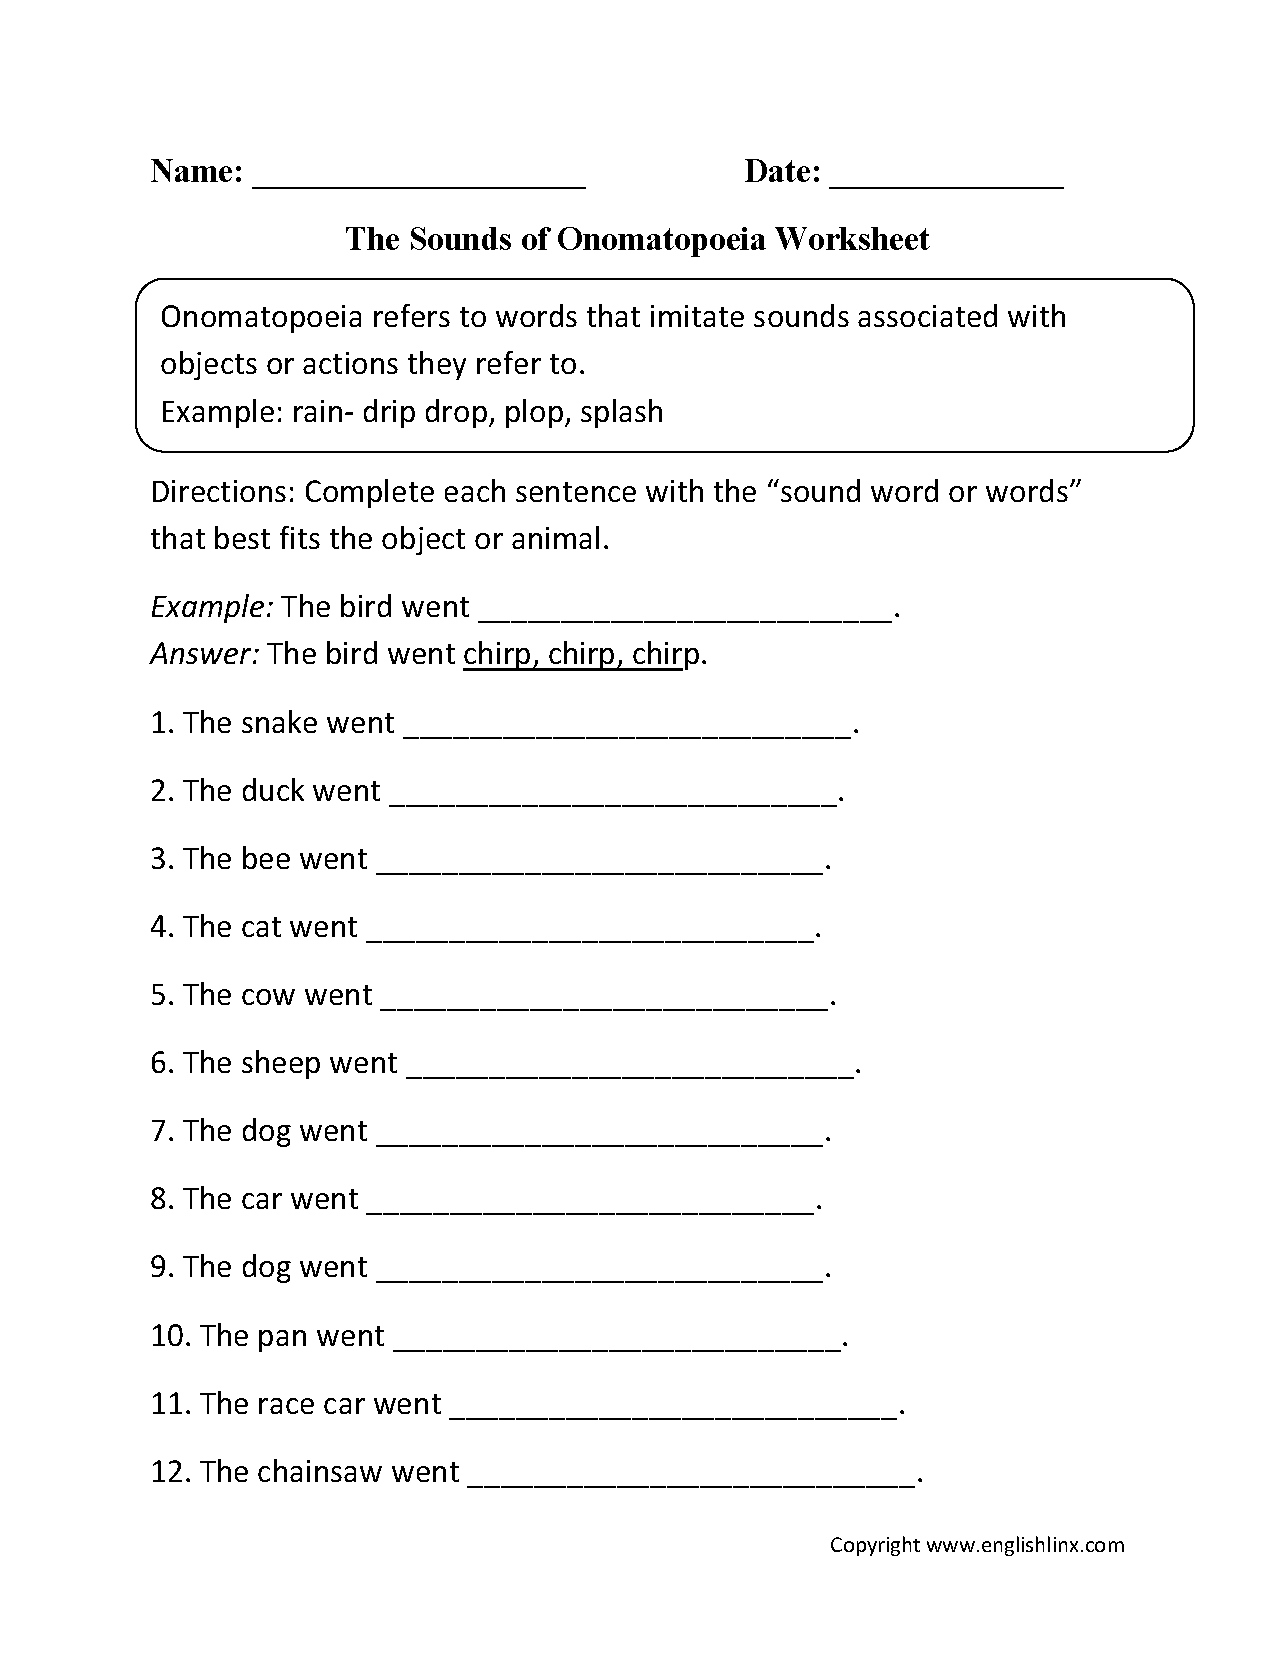 Aldiablosus  Surprising Englishlinxcom  Onomatopoeia Worksheets With Hot Worksheet With Nice Cooking Measurements Worksheet Also Free Spanish Worksheets For High School In Addition Multiplying Mixed Fractions Worksheets And Excel Lock Worksheet As Well As Free Printable Th Grade Life Science Worksheets Additionally Magic School Bus Inside Ralphie Worksheet From Englishlinxcom With Aldiablosus  Hot Englishlinxcom  Onomatopoeia Worksheets With Nice Worksheet And Surprising Cooking Measurements Worksheet Also Free Spanish Worksheets For High School In Addition Multiplying Mixed Fractions Worksheets From Englishlinxcom